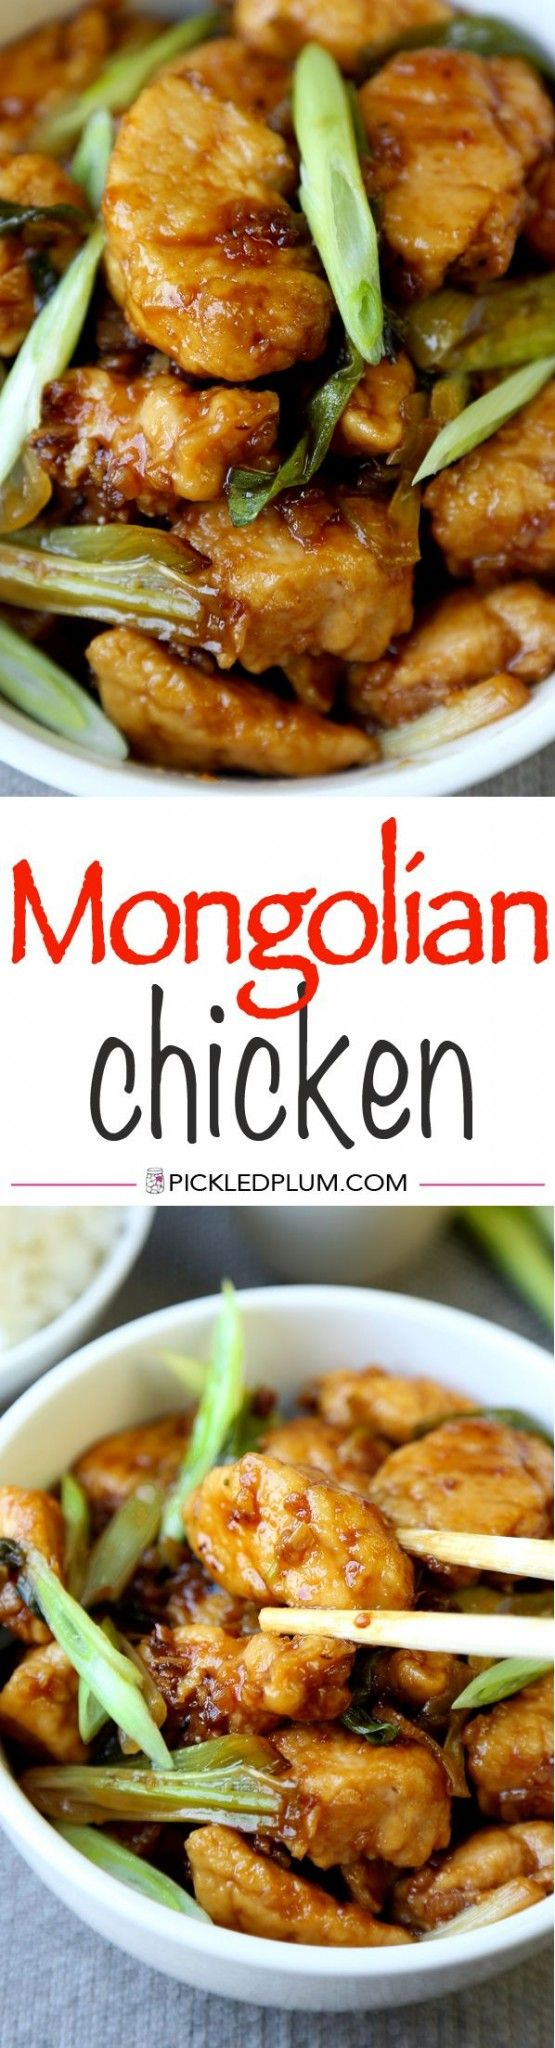 2603 best asian recipes images on pinterest asian food recipes mongolian chicken recipe quick easy and tasty pickledplumc chinese food forumfinder Gallery